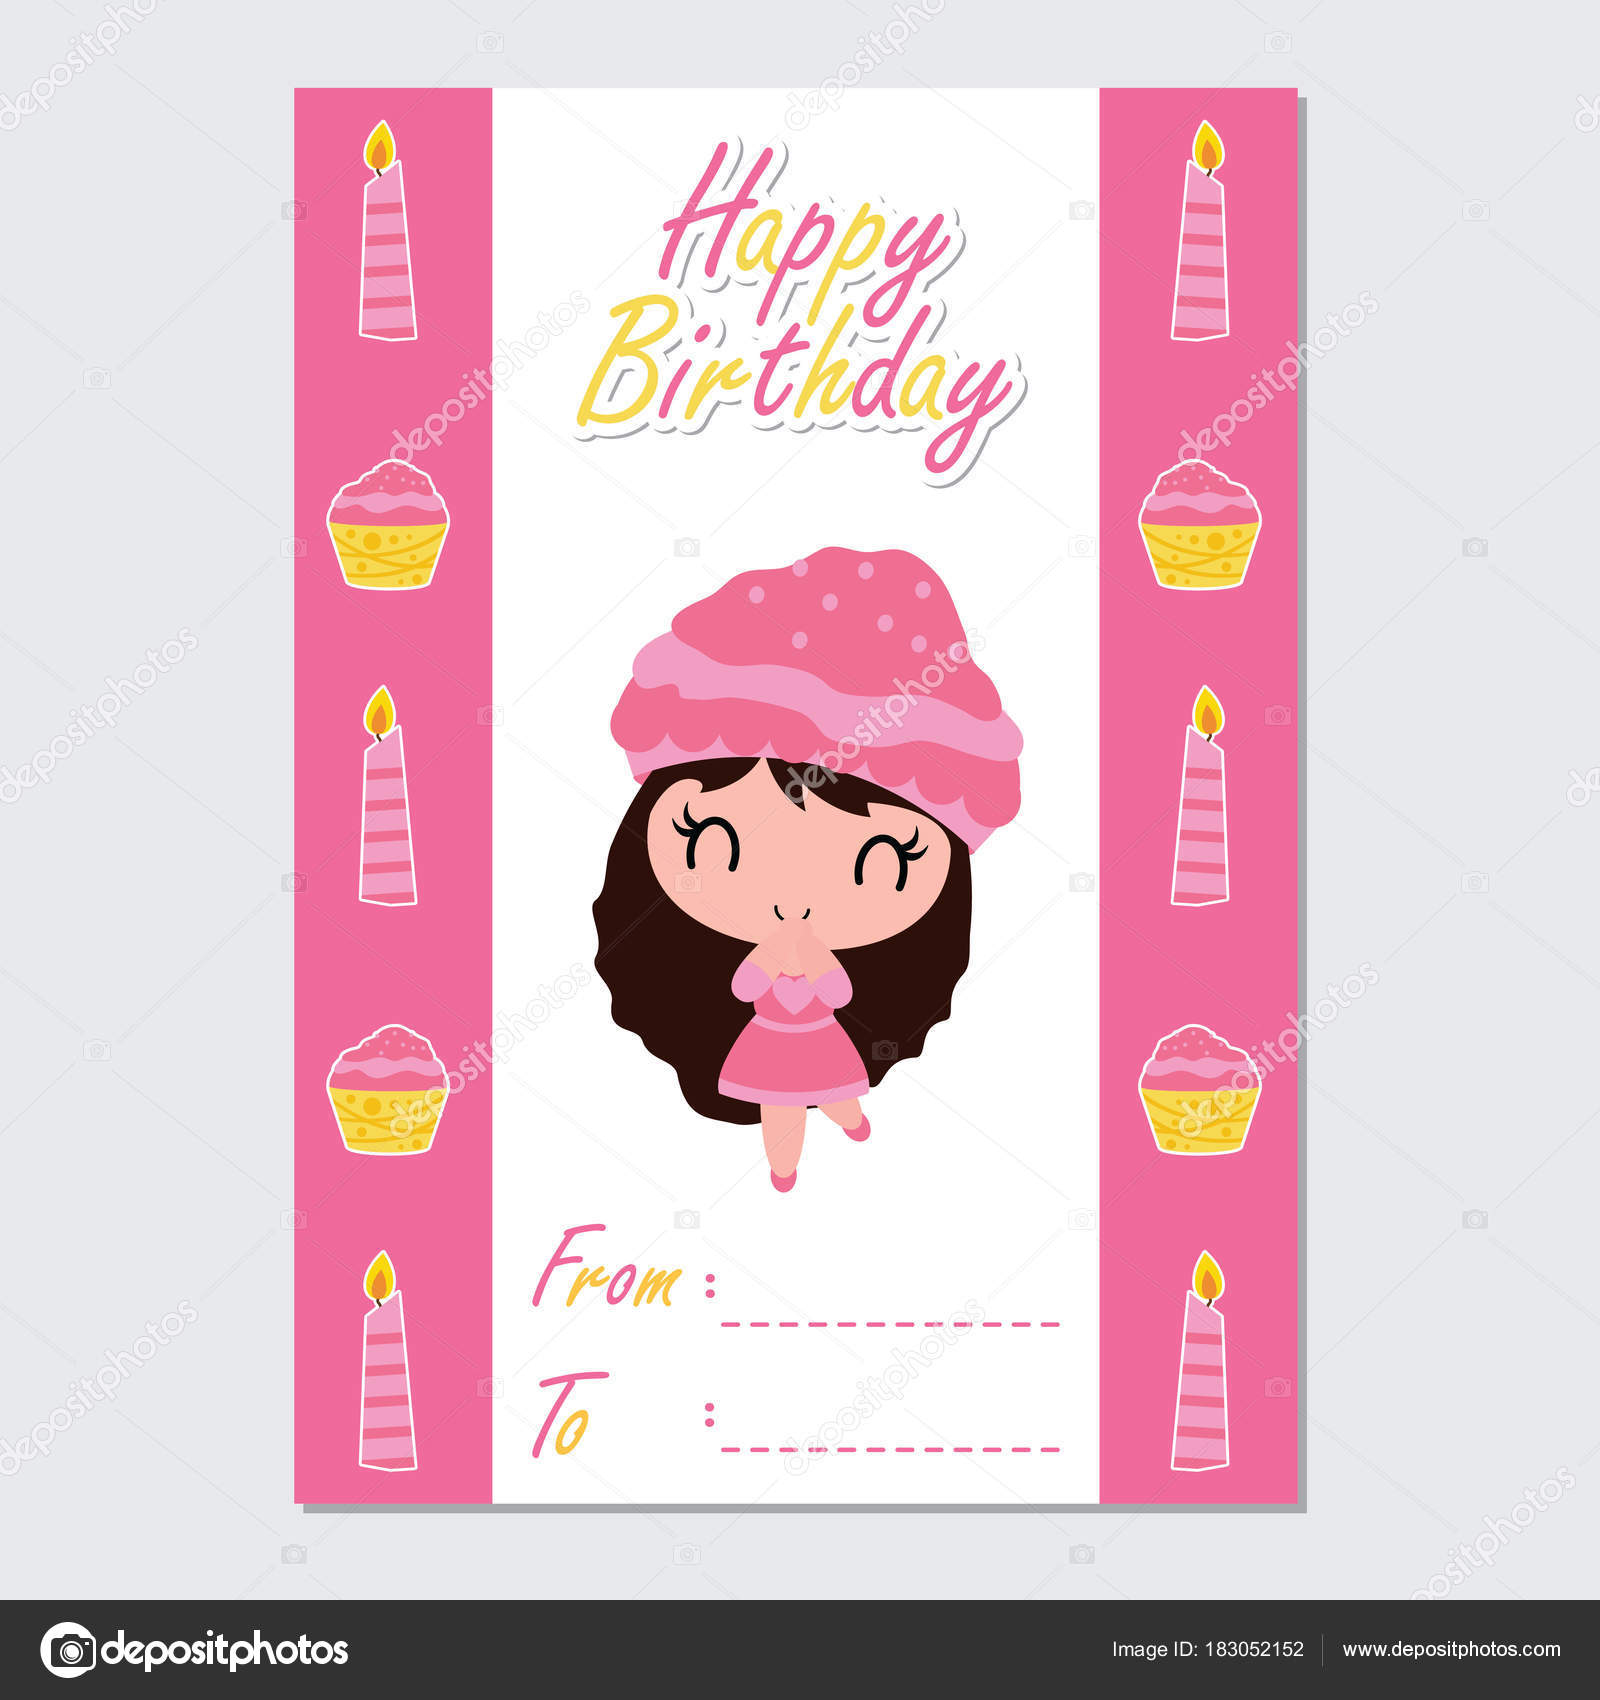 birthday girl border ; depositphotos_183052152-stock-illustration-cute-girl-candle-cupcake-border